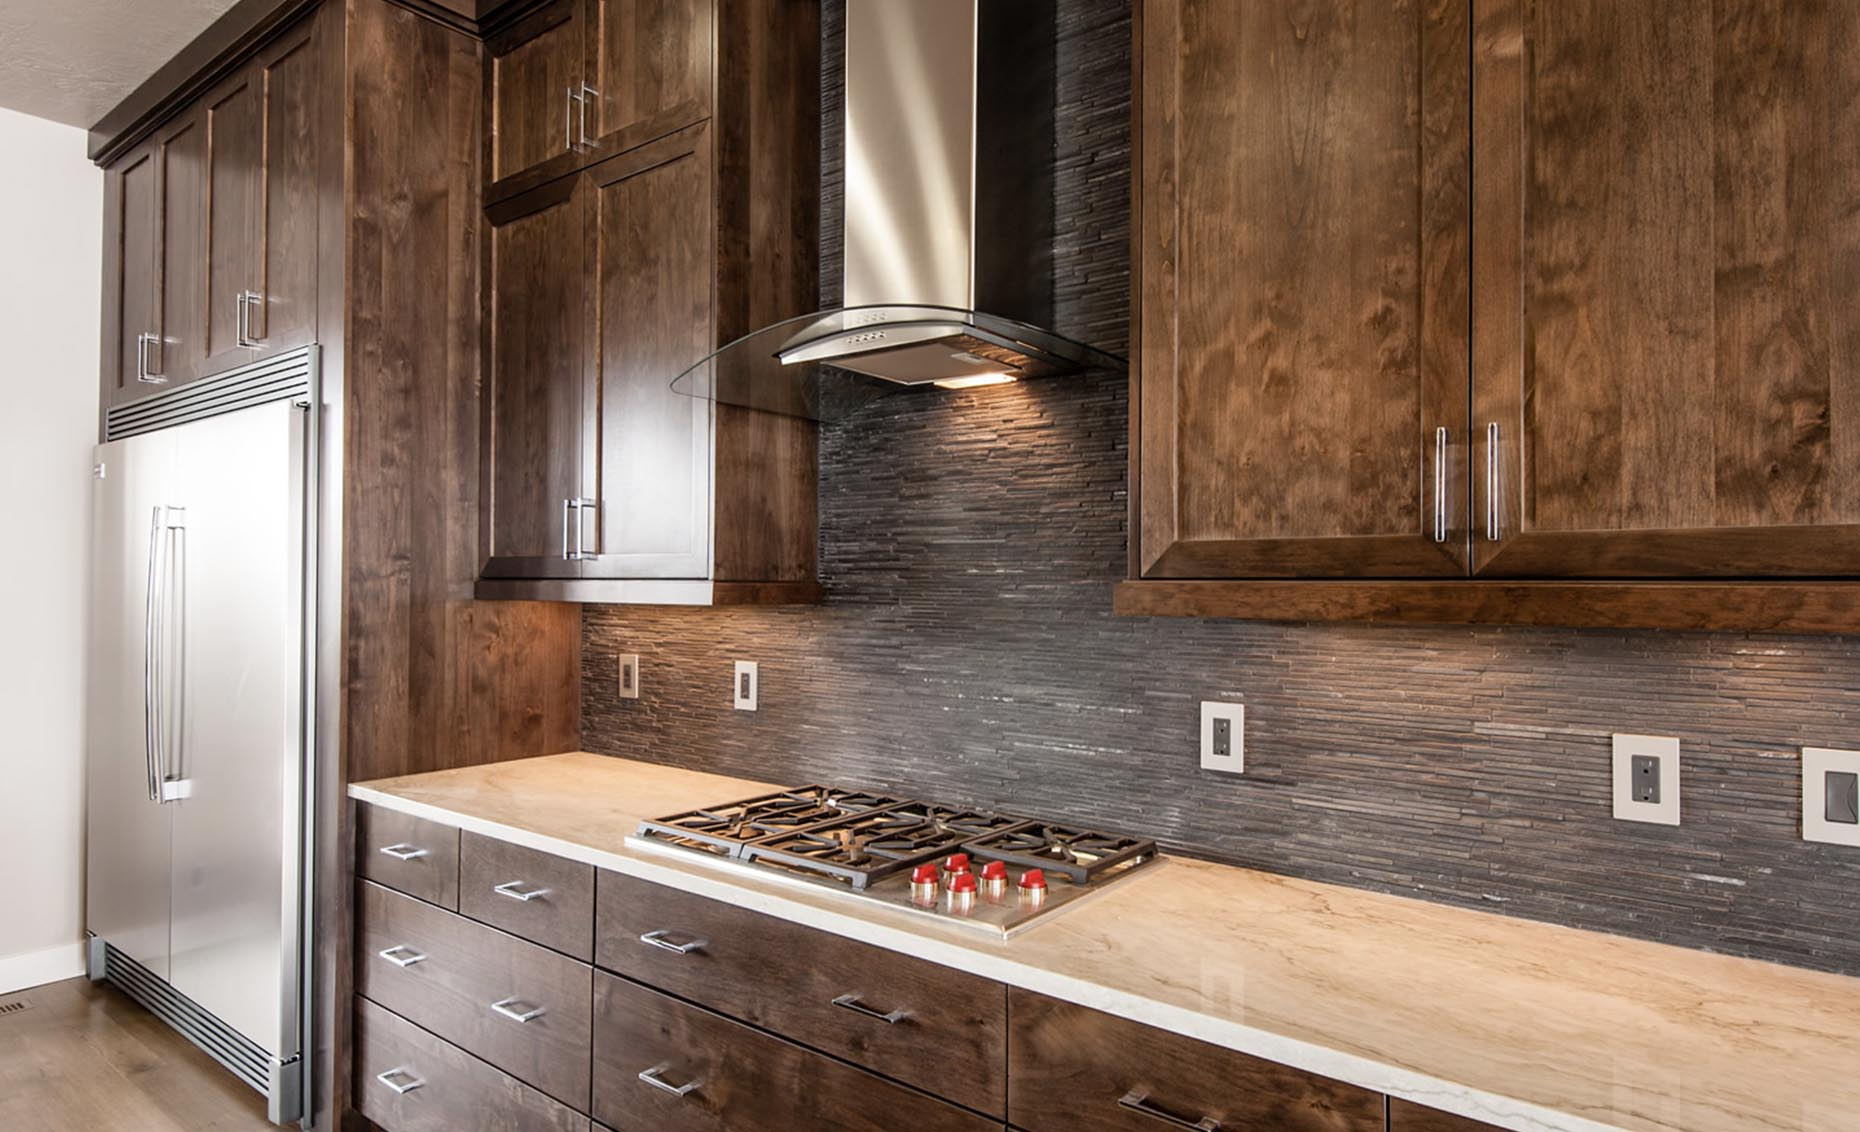 The Corrente Bello House Kitchen Stovetop and Refrigerator